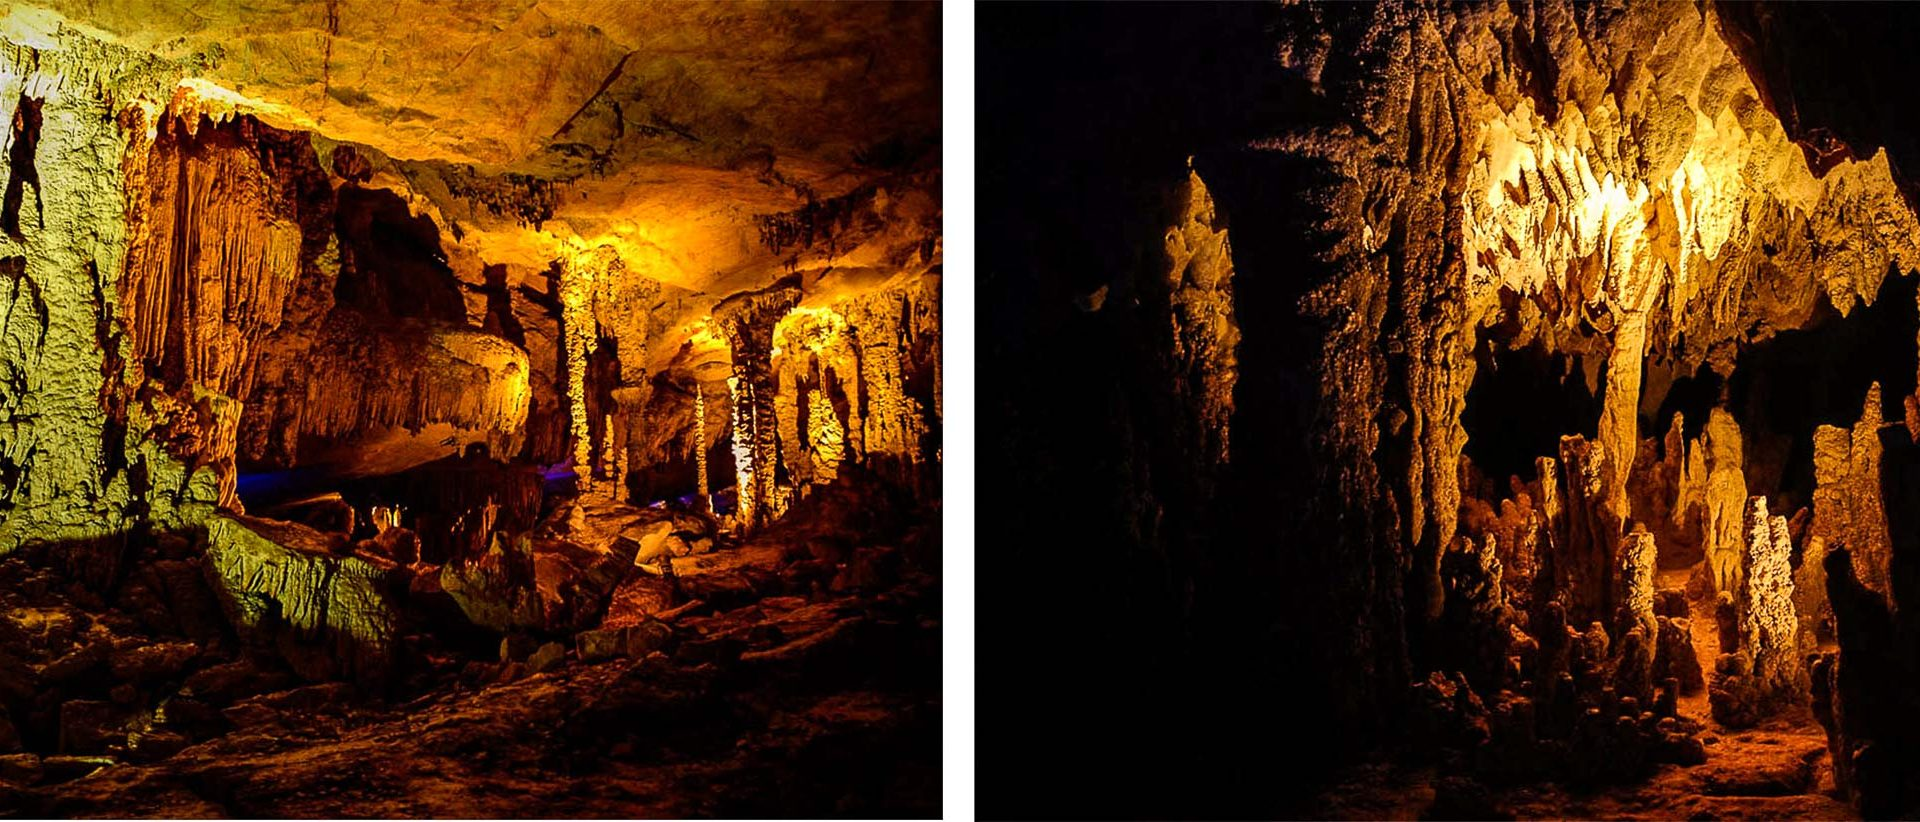 Much to the delight of photographers, the inside of Laos' Kong Lor Cave is tastefully lit.